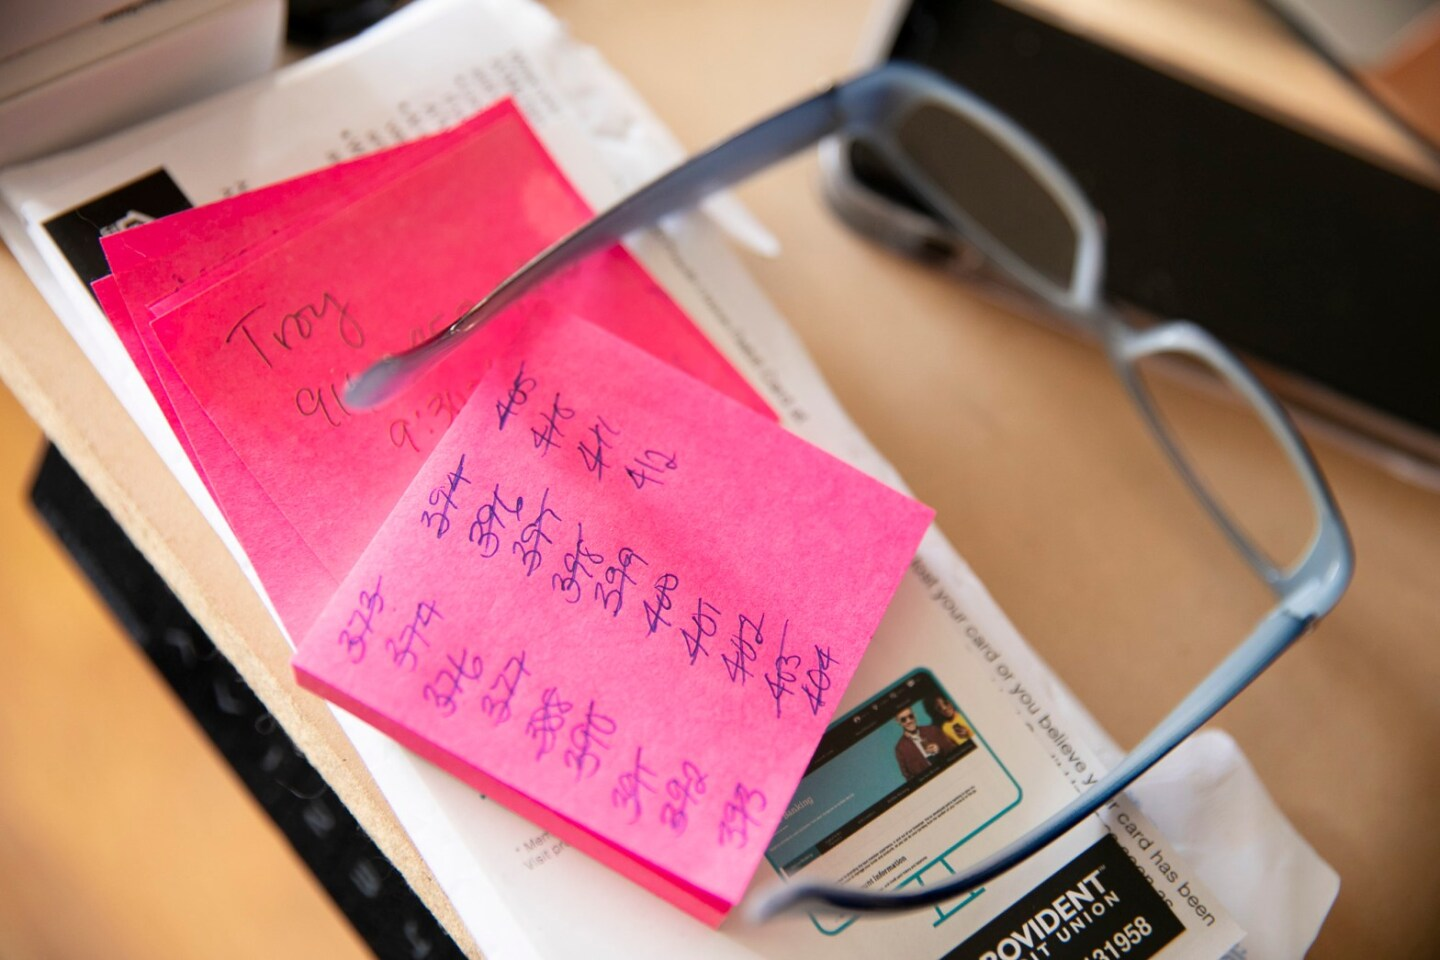 Alyssa Jenkins' keeps track of the over 400 vaccine appointments she made for people on a pink sticky note.